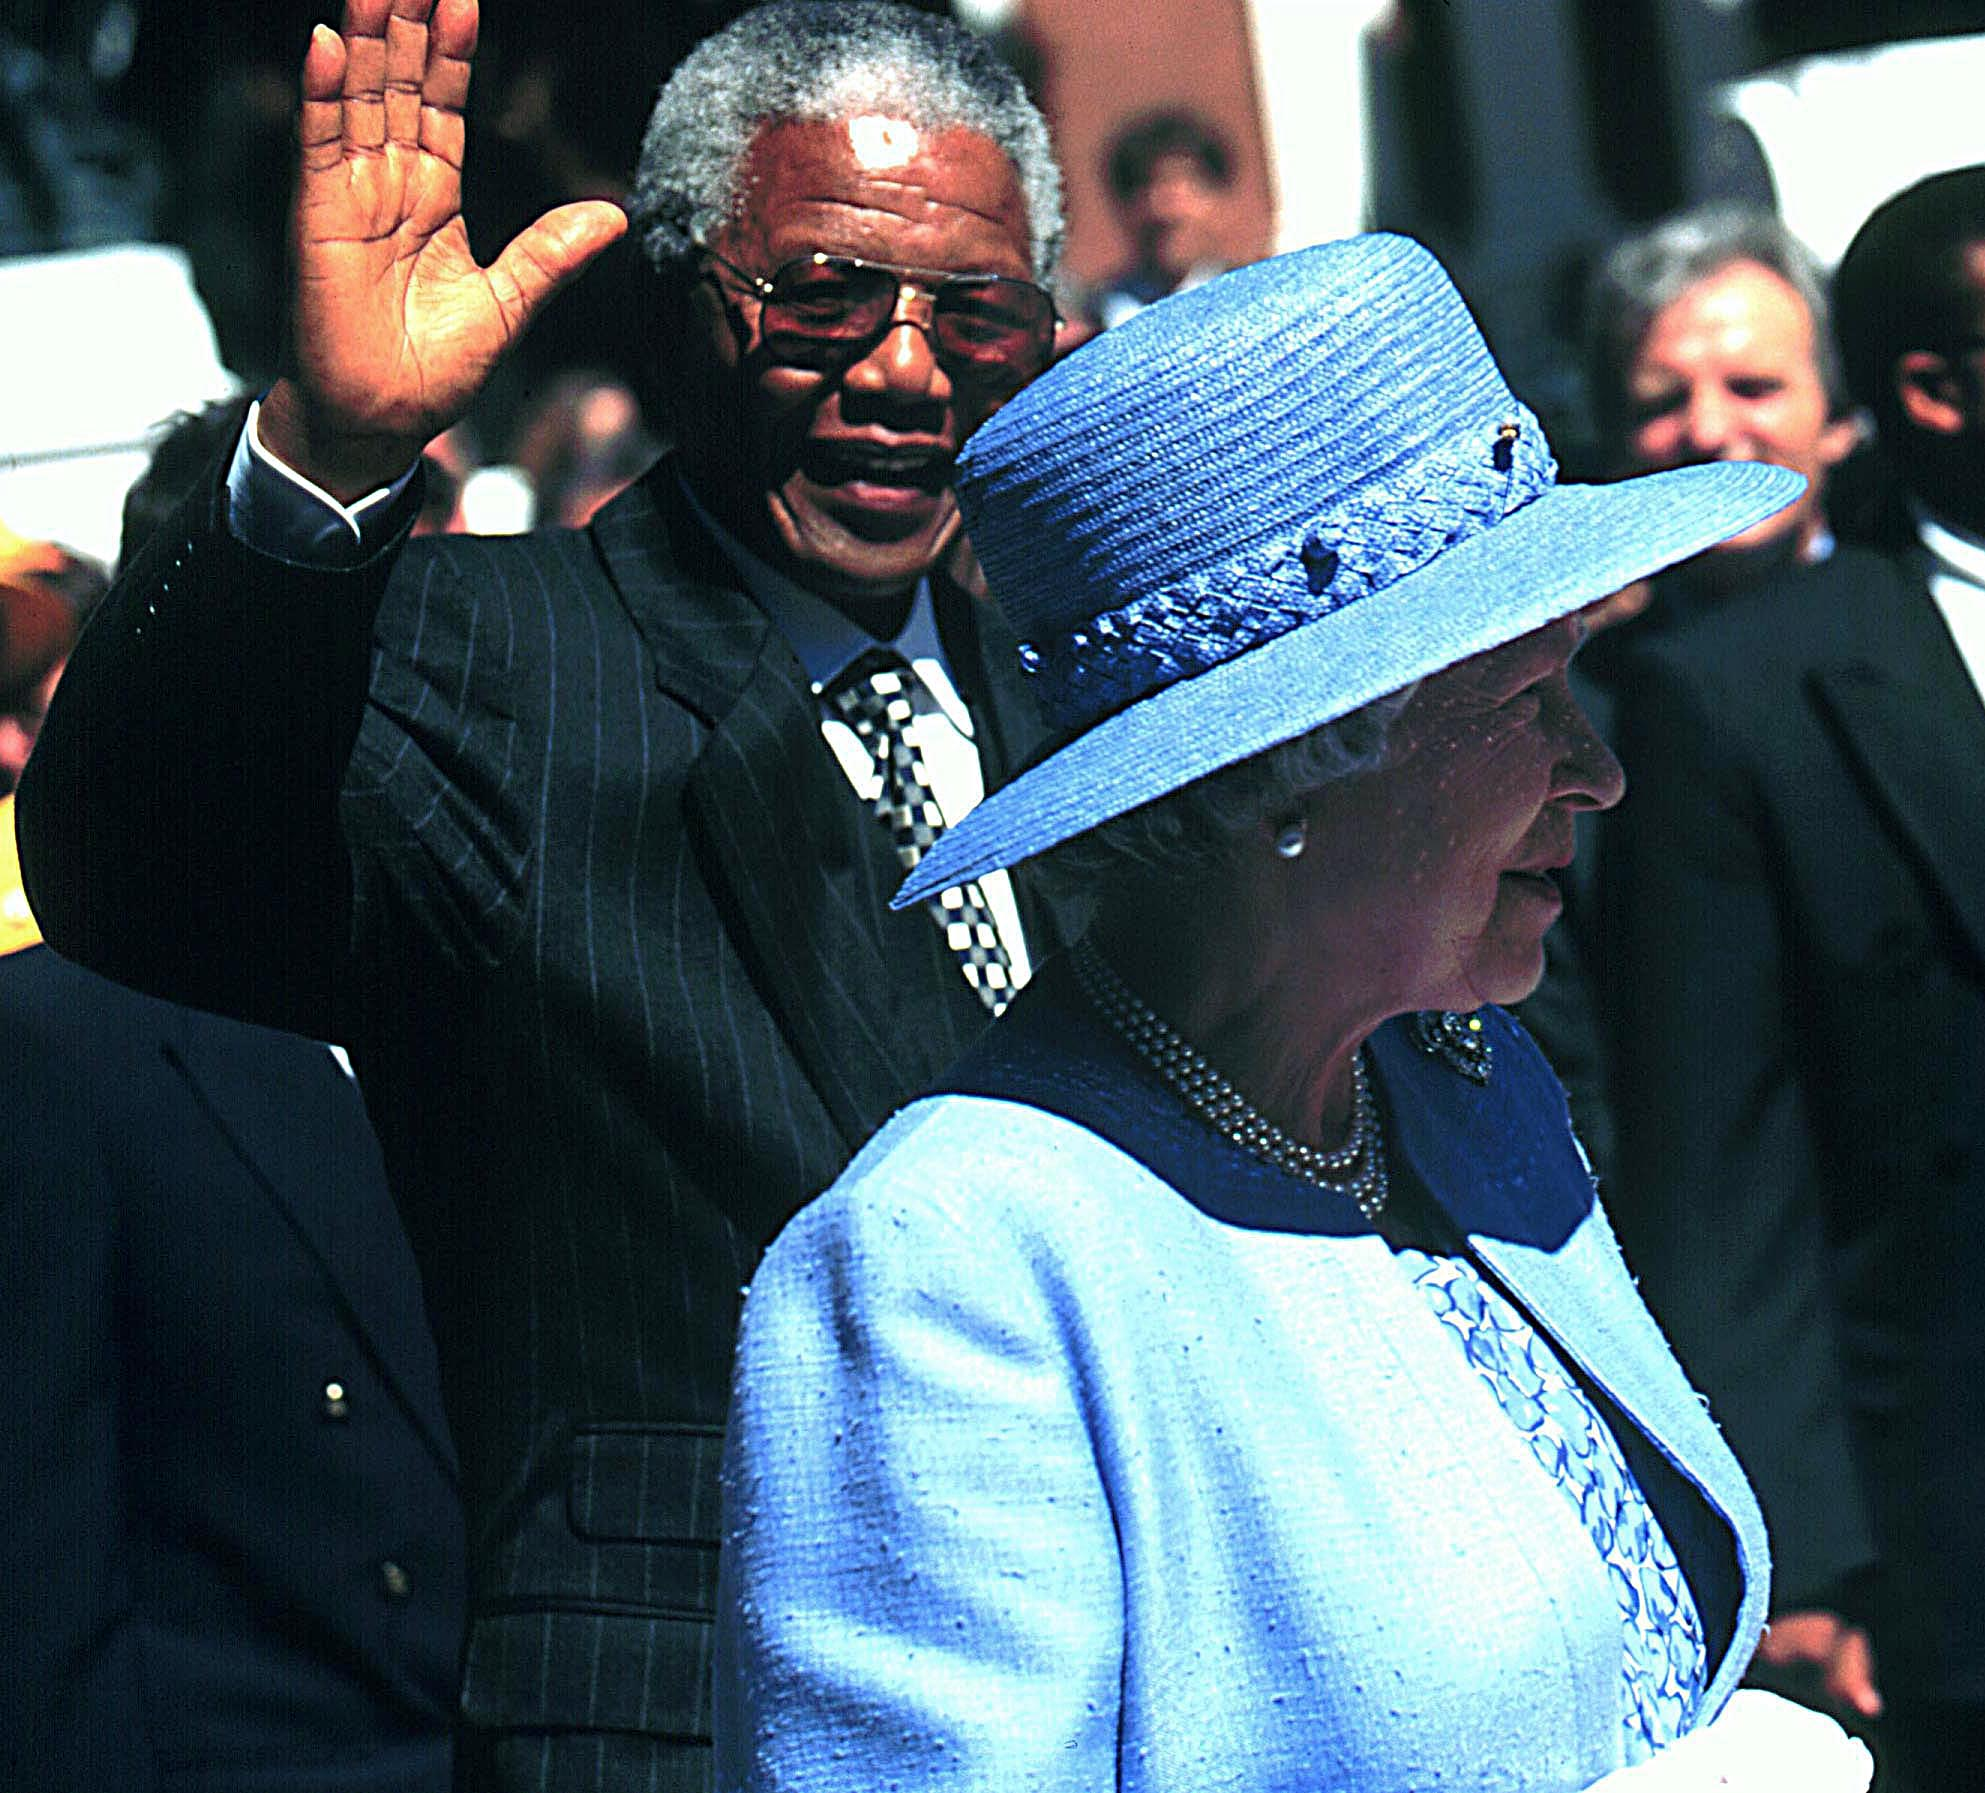 980106SH32:SAFRICA:ROYALS:MAR95 - Queen  Elizabeth II and  President Nelson Mandela takes a-walk-about during her state visit to South Africa which started in CapeTown. (Photo by Shaun Harris / www.afrikamoves.co.za)